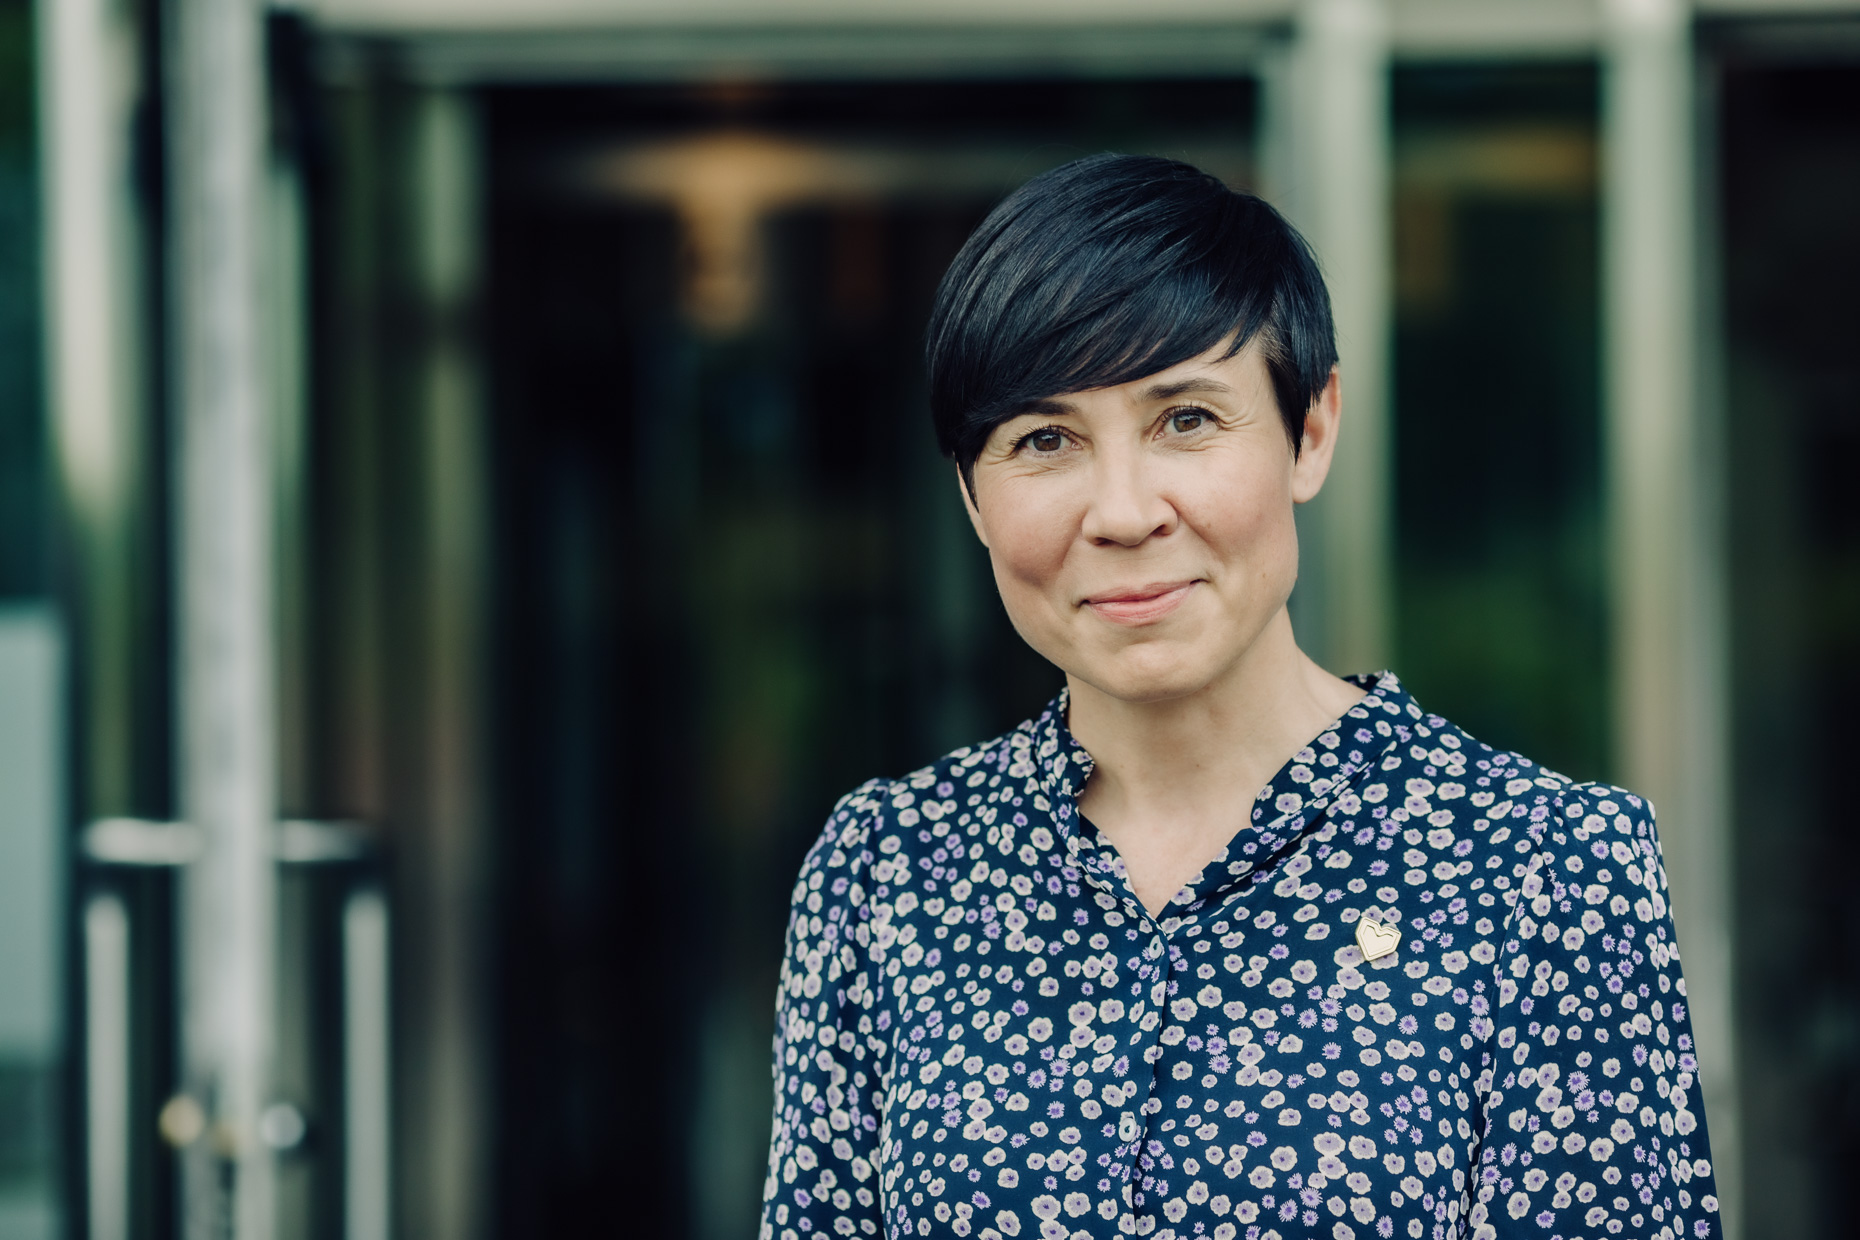 Ine Eriksen Søreide | Minister of Foreign Affairs Norway